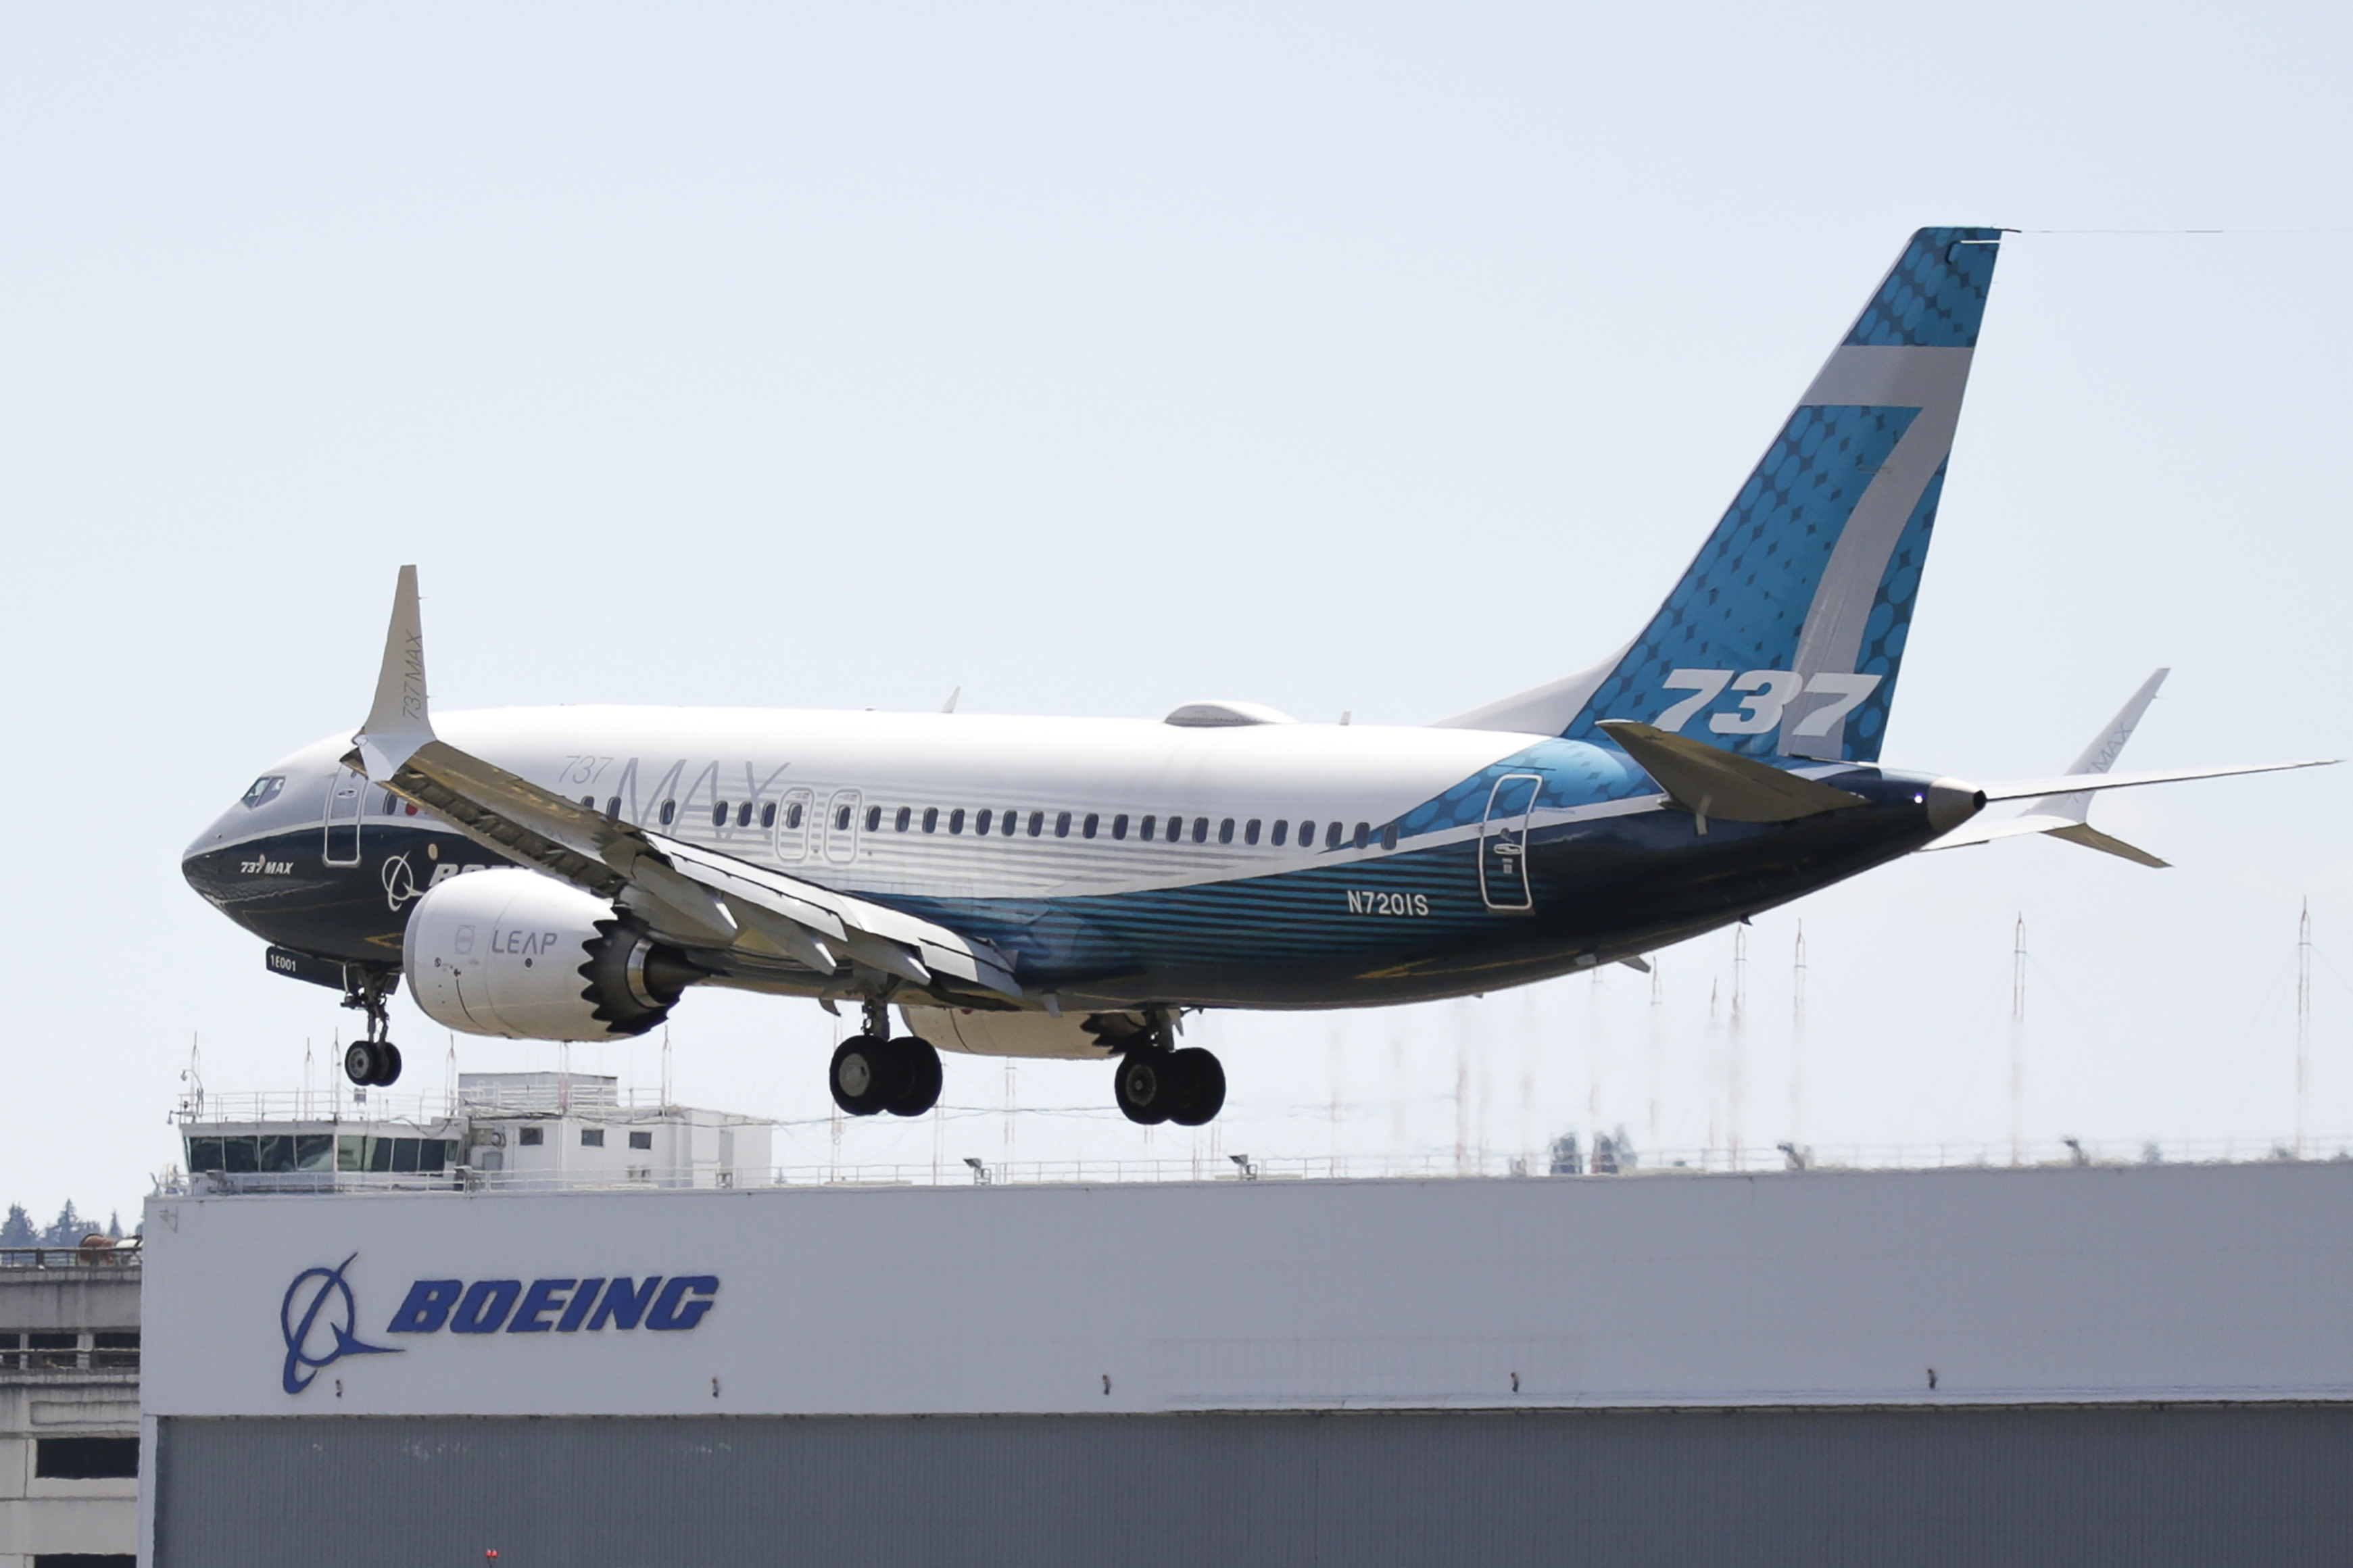 Boeing got hit with a new wave of canceled plane orders